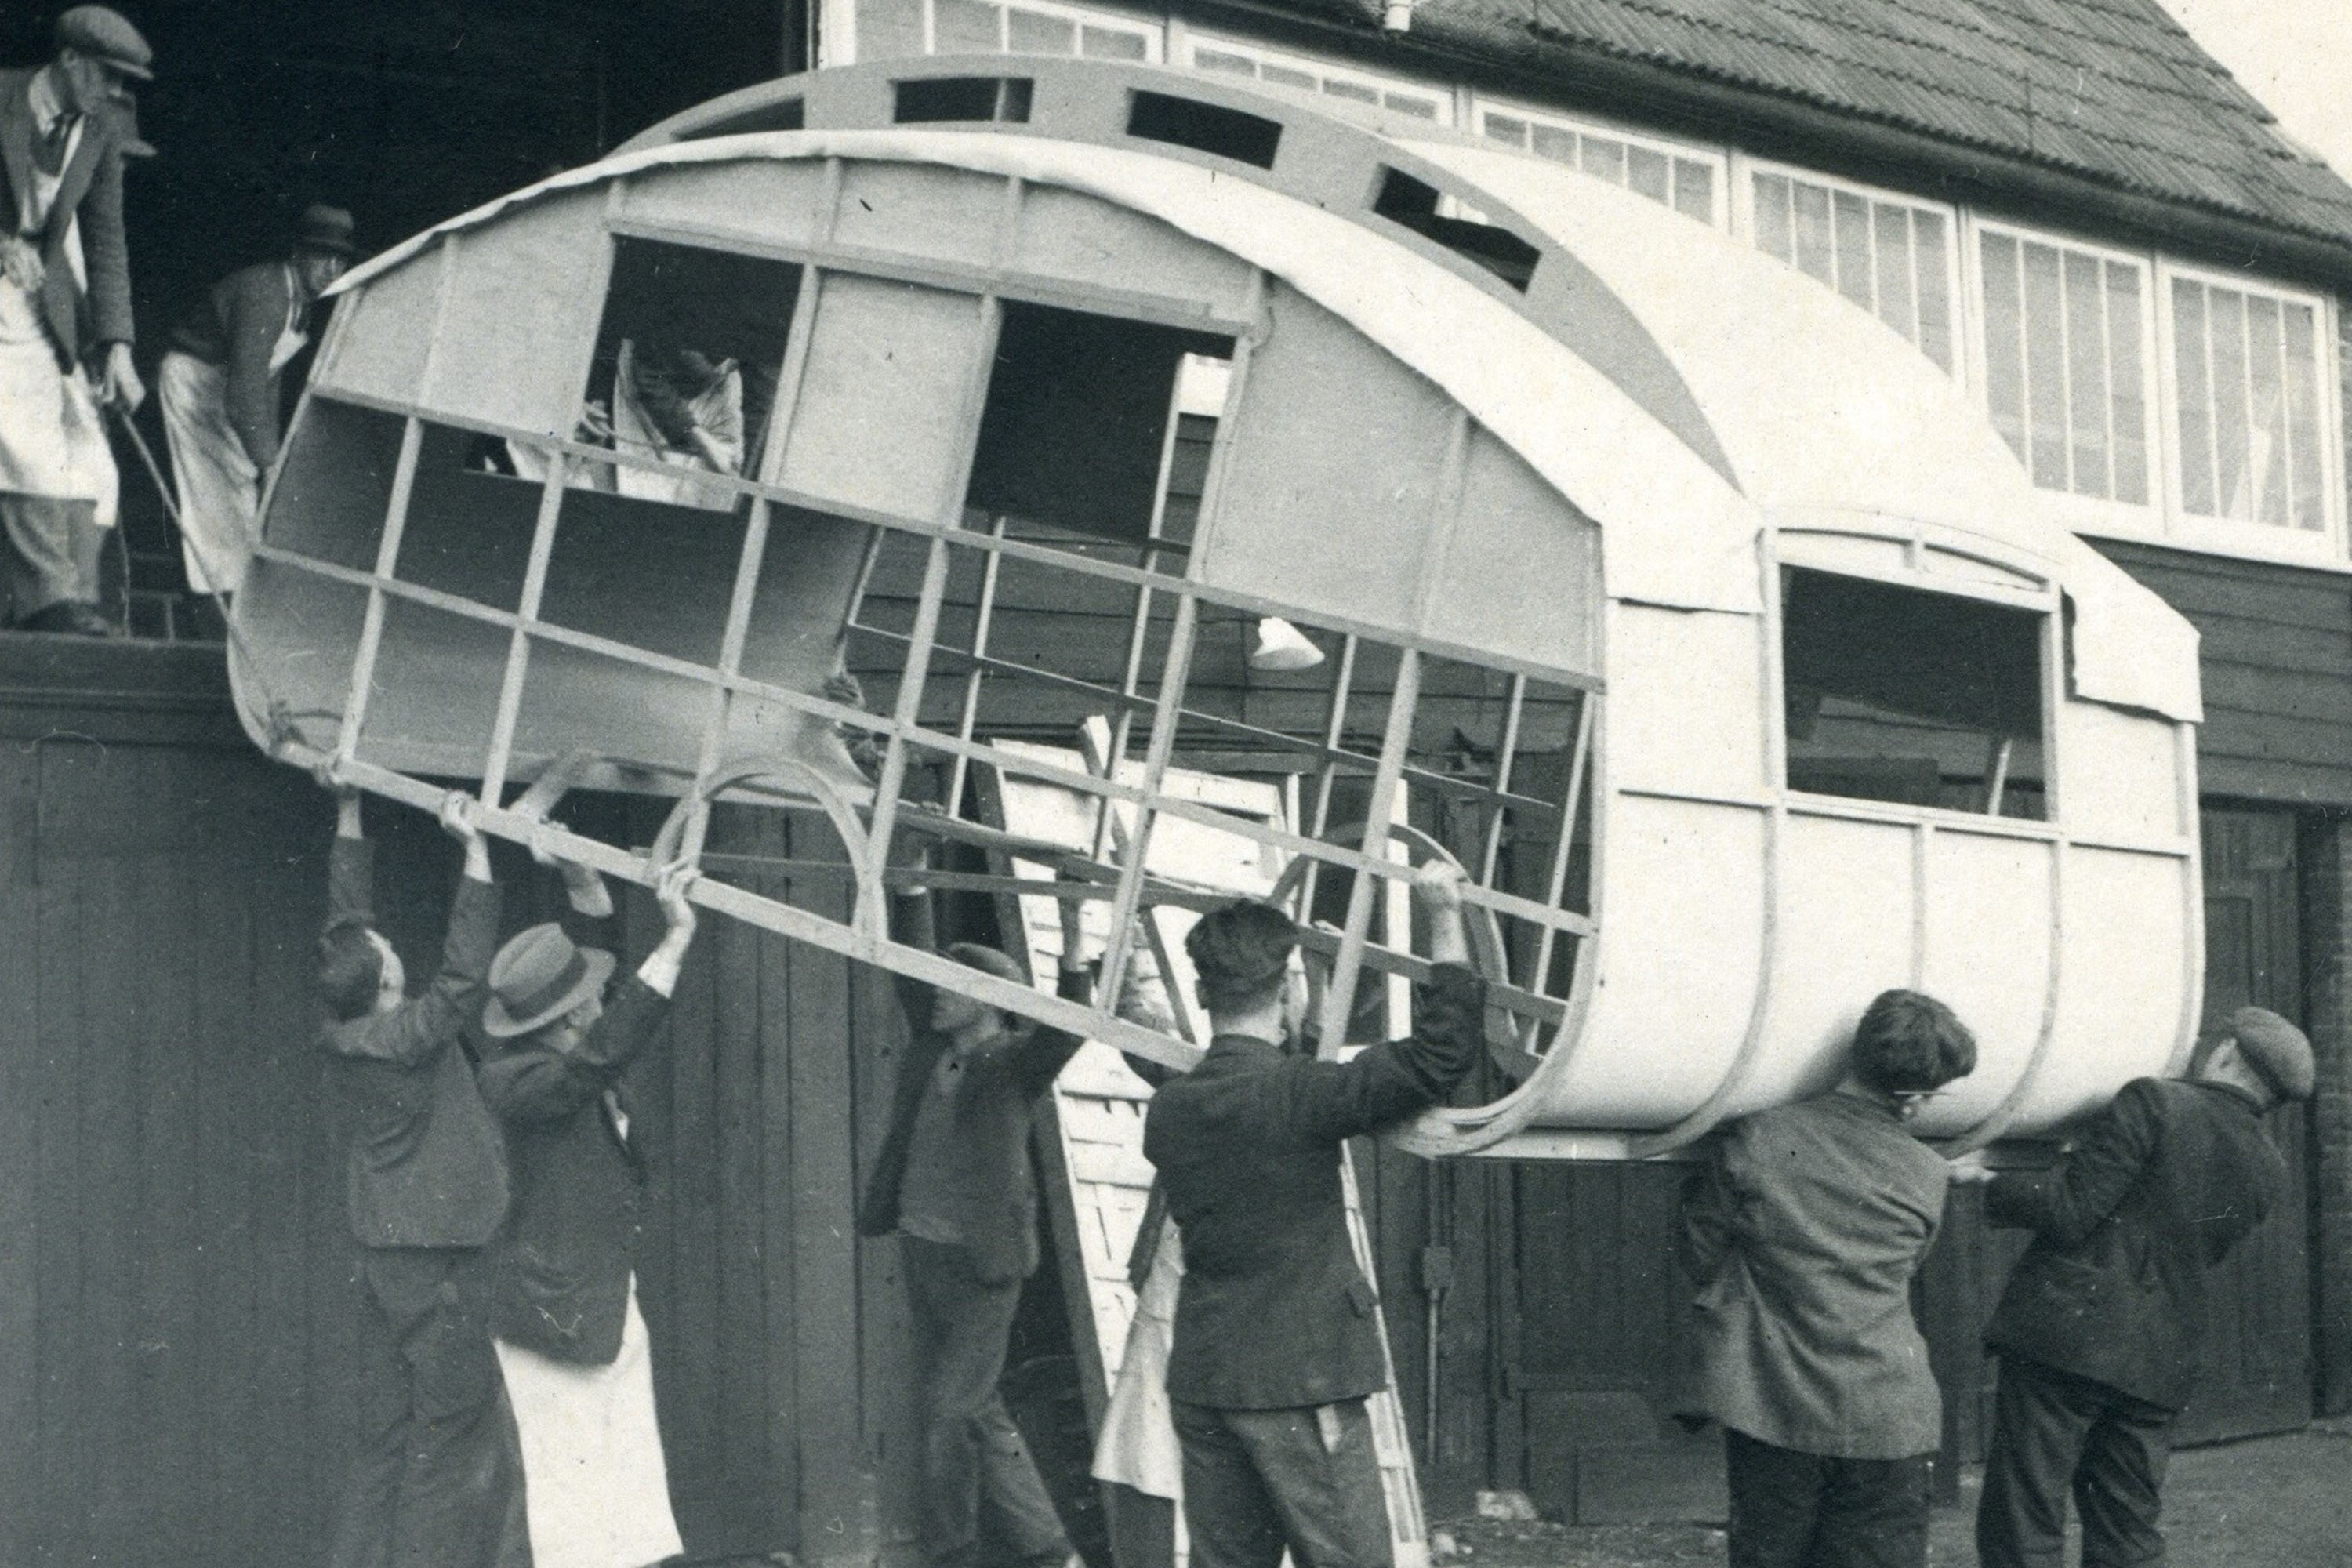 Workers lifting a caravan frame out of a workshop